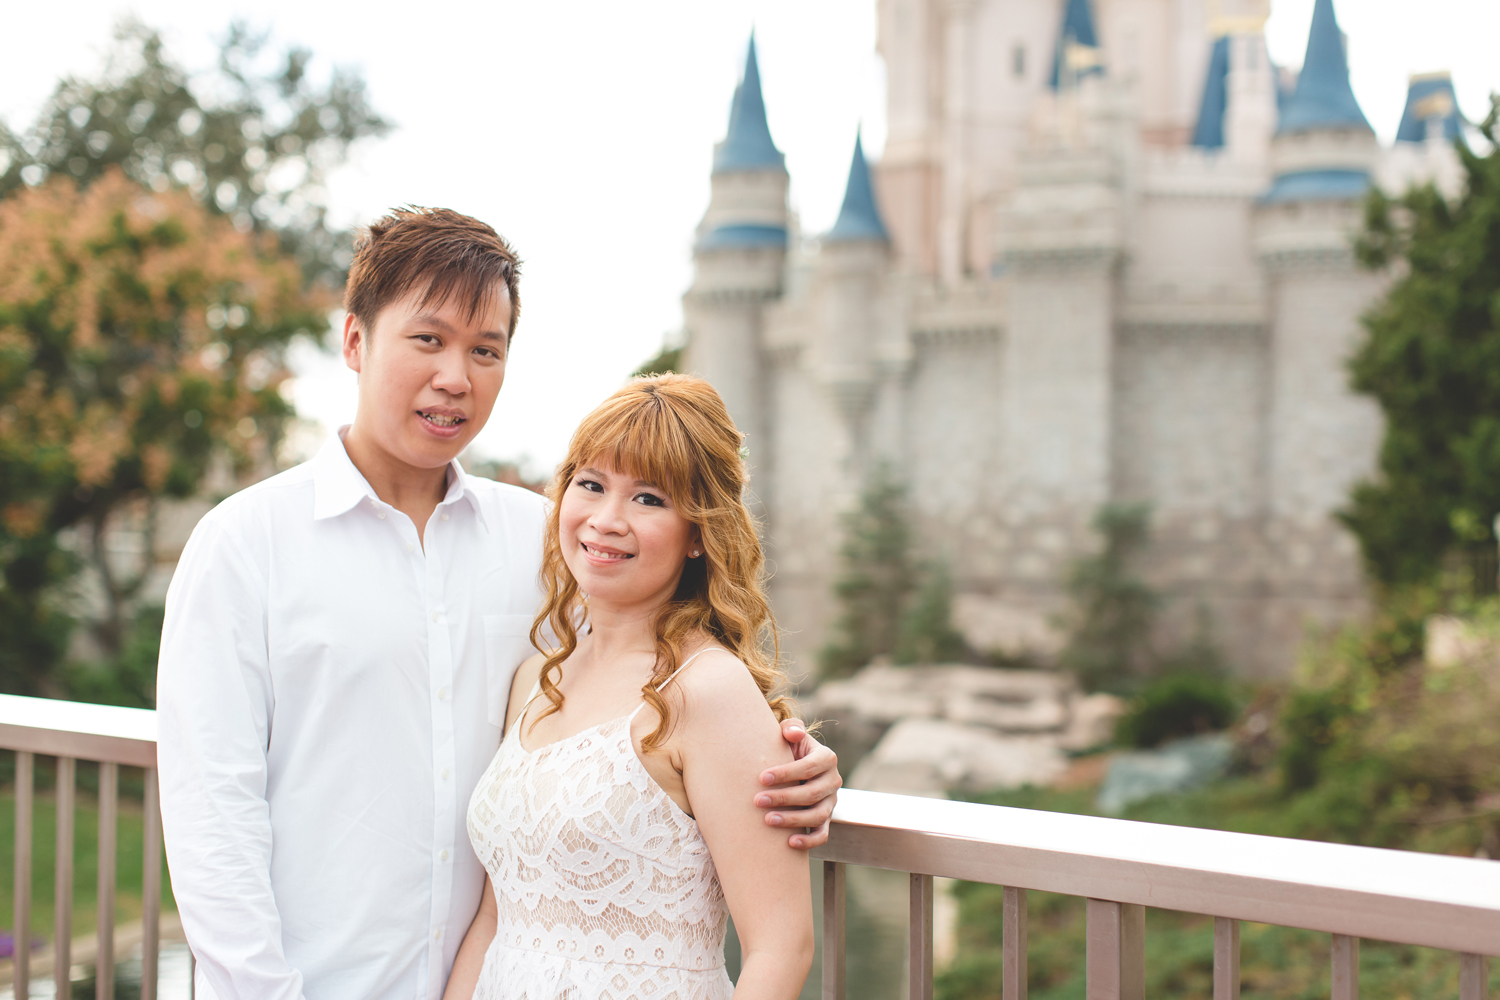 Disney Honeymoon session - Disney Engagement Photos - Disney Wedding Photographer - Destination Orlando Wedding Photographer - Jaime DiOrio (11).jpg